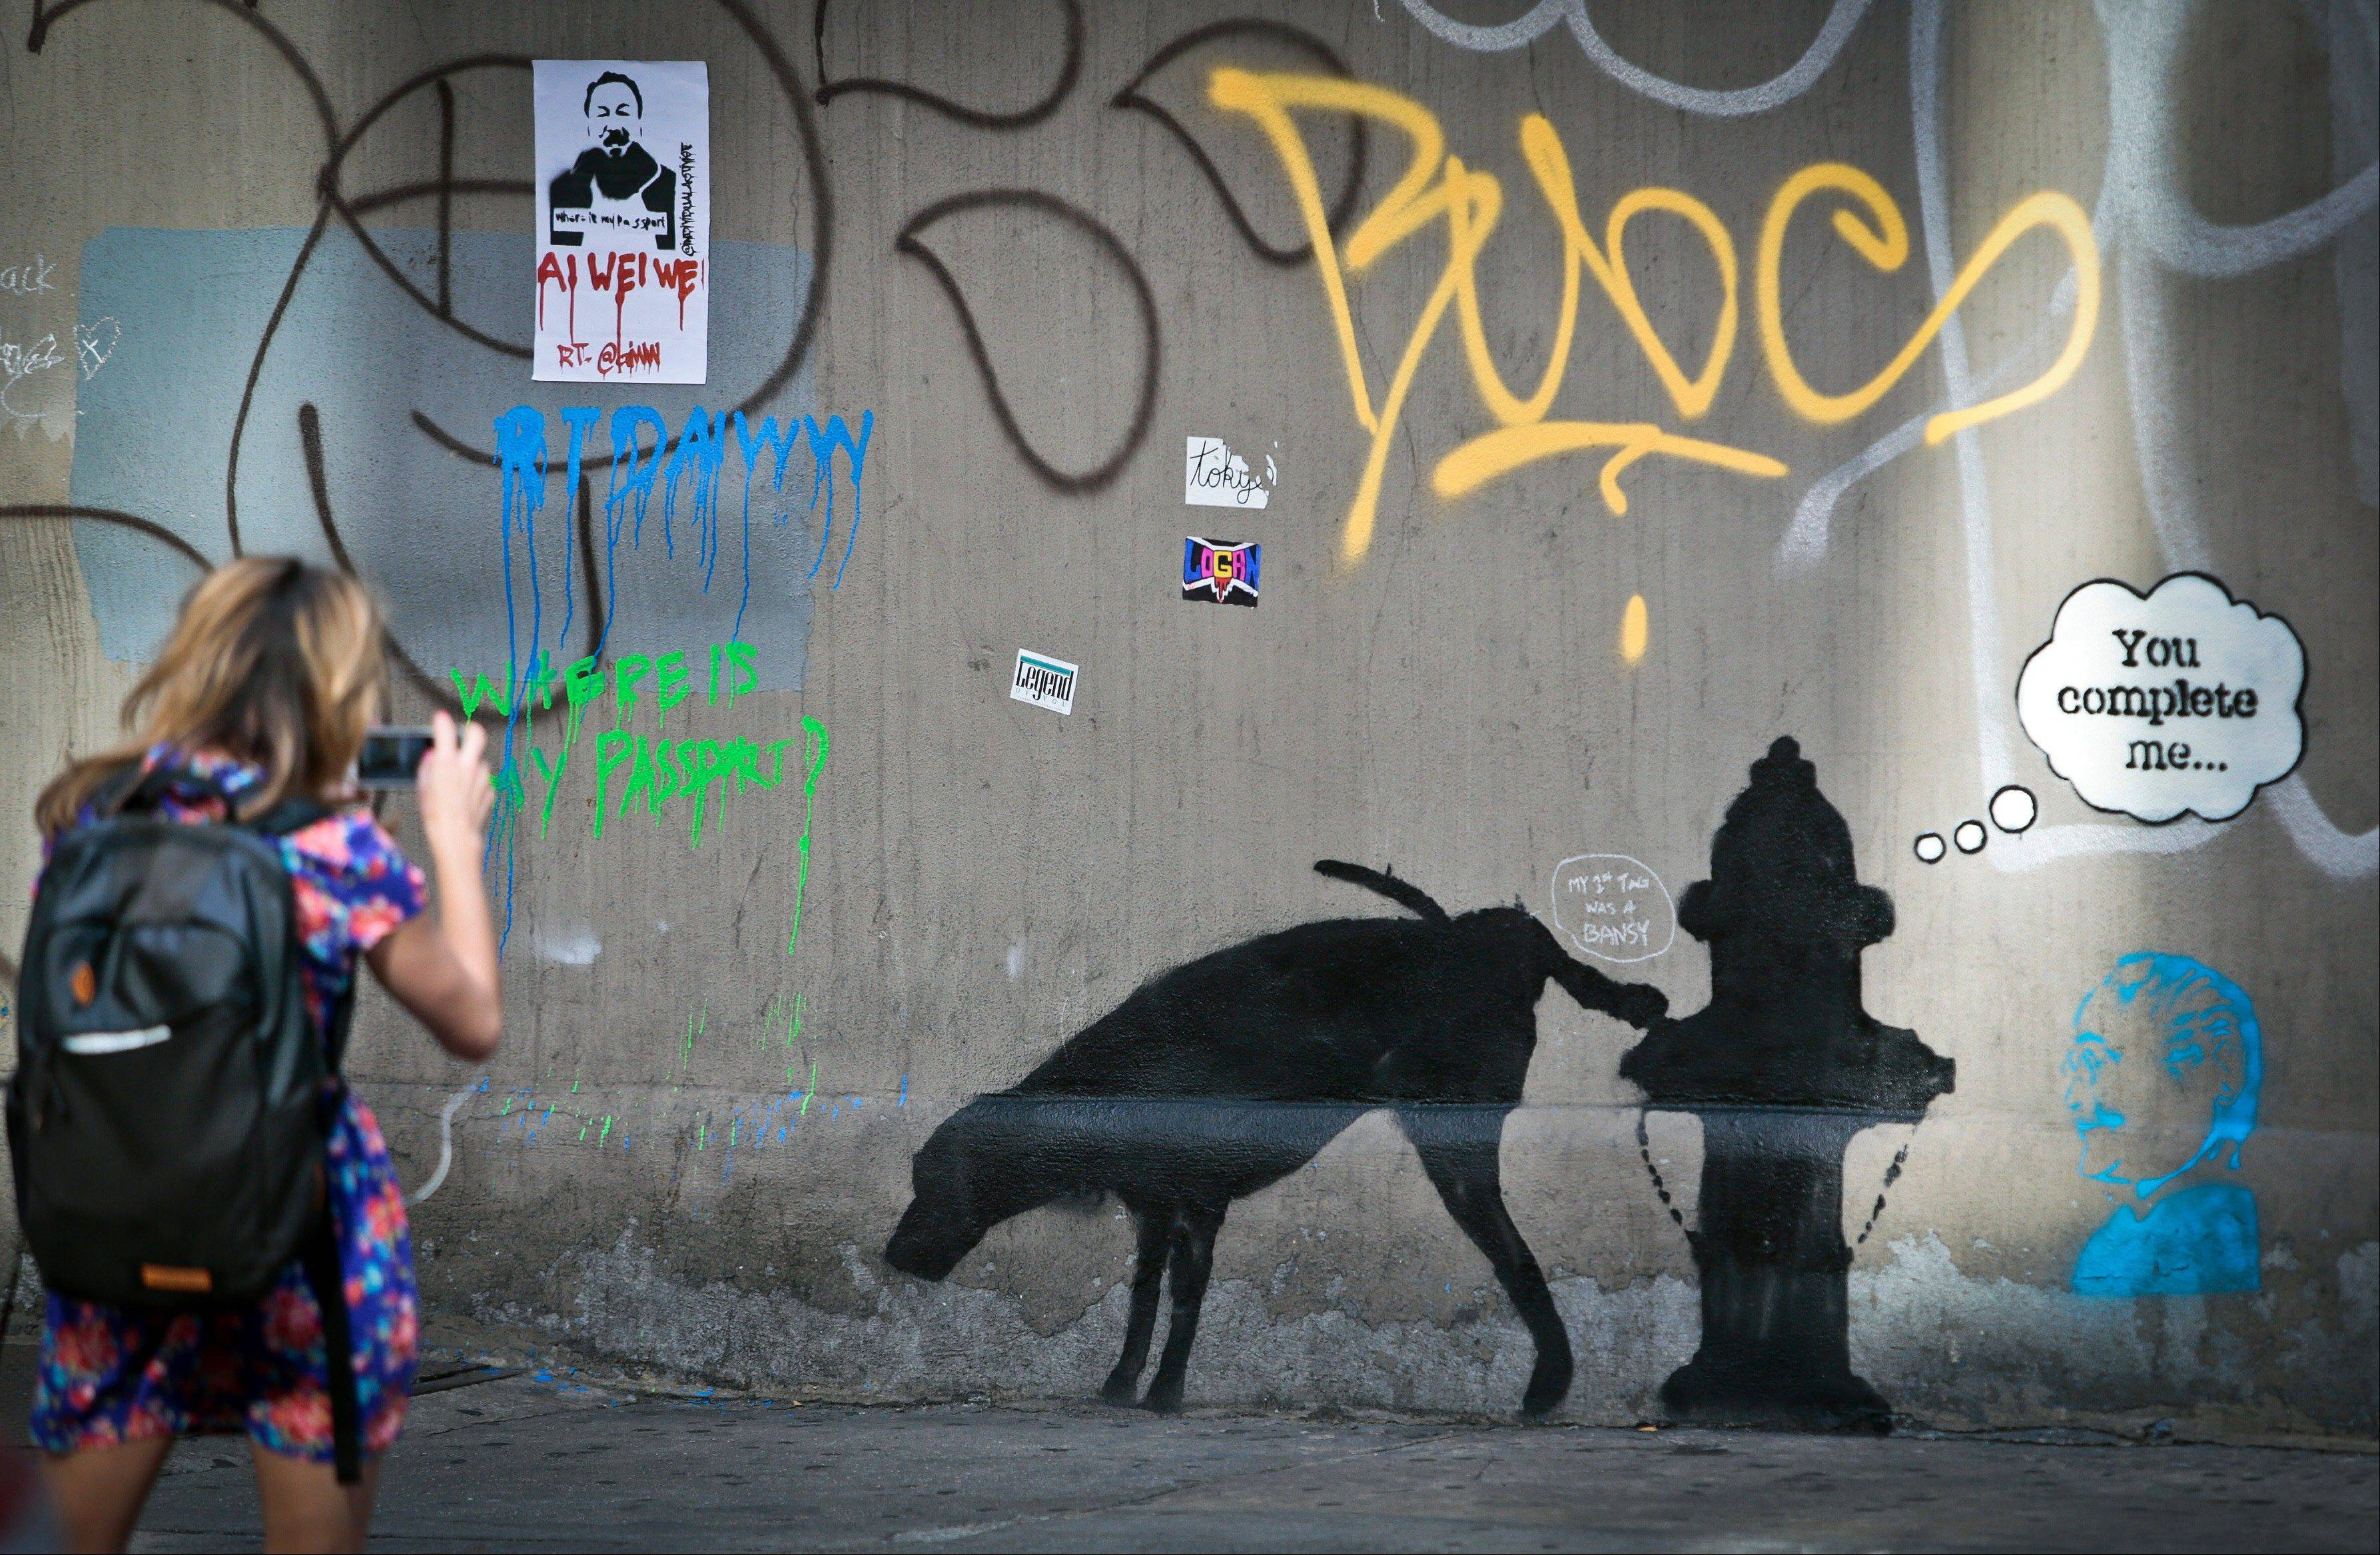 Graffiti by the secretive British artist Banksy, featuring a dog and a fire plug, draws attention on 24th Street, near Sixth Avenue in New York, on Friday. Banksy graffiti is turning up on the streets of the city and all over social media.